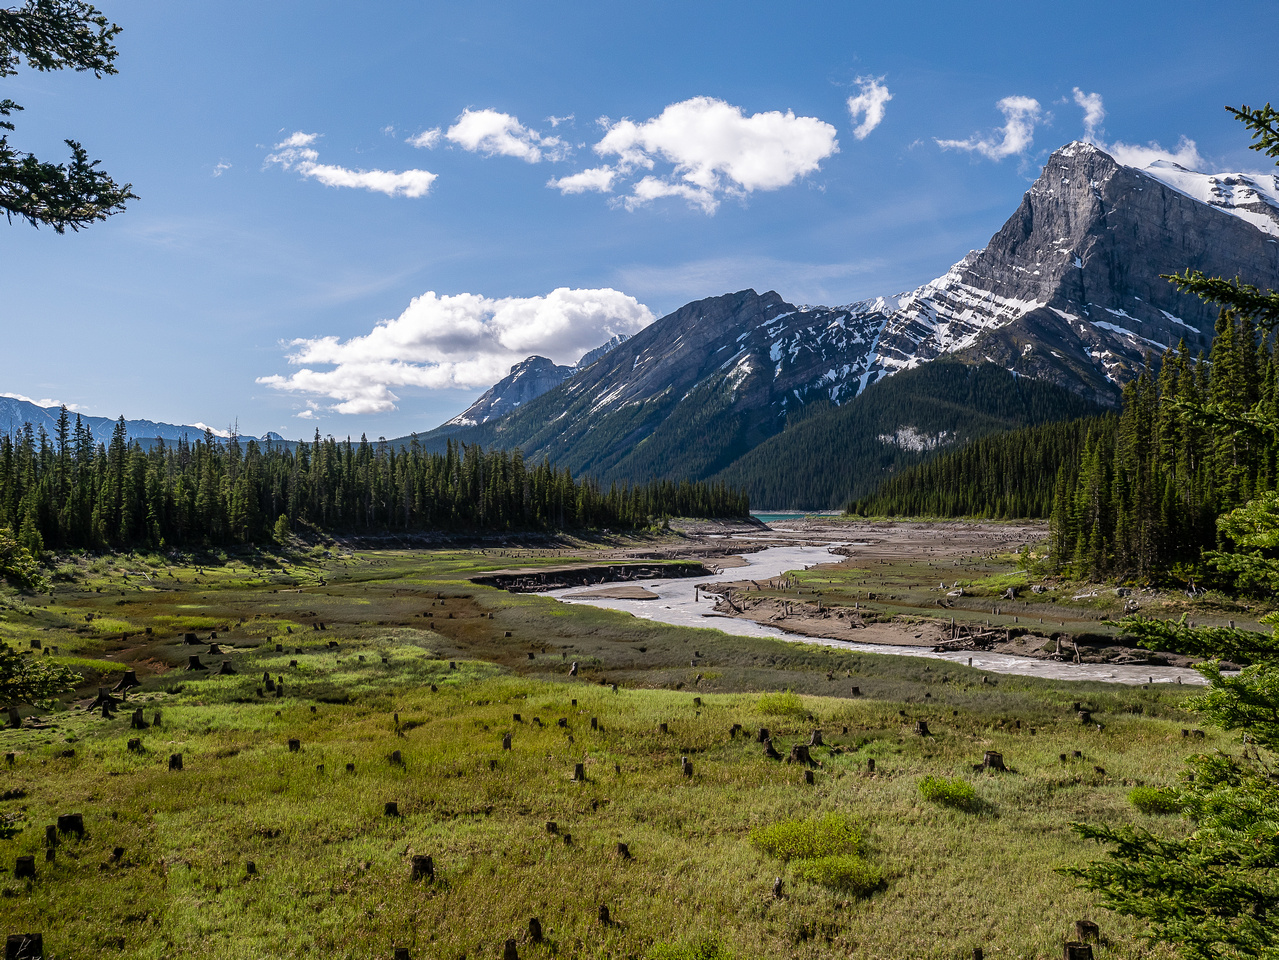 The Kananaskis River winds its way to the lake.